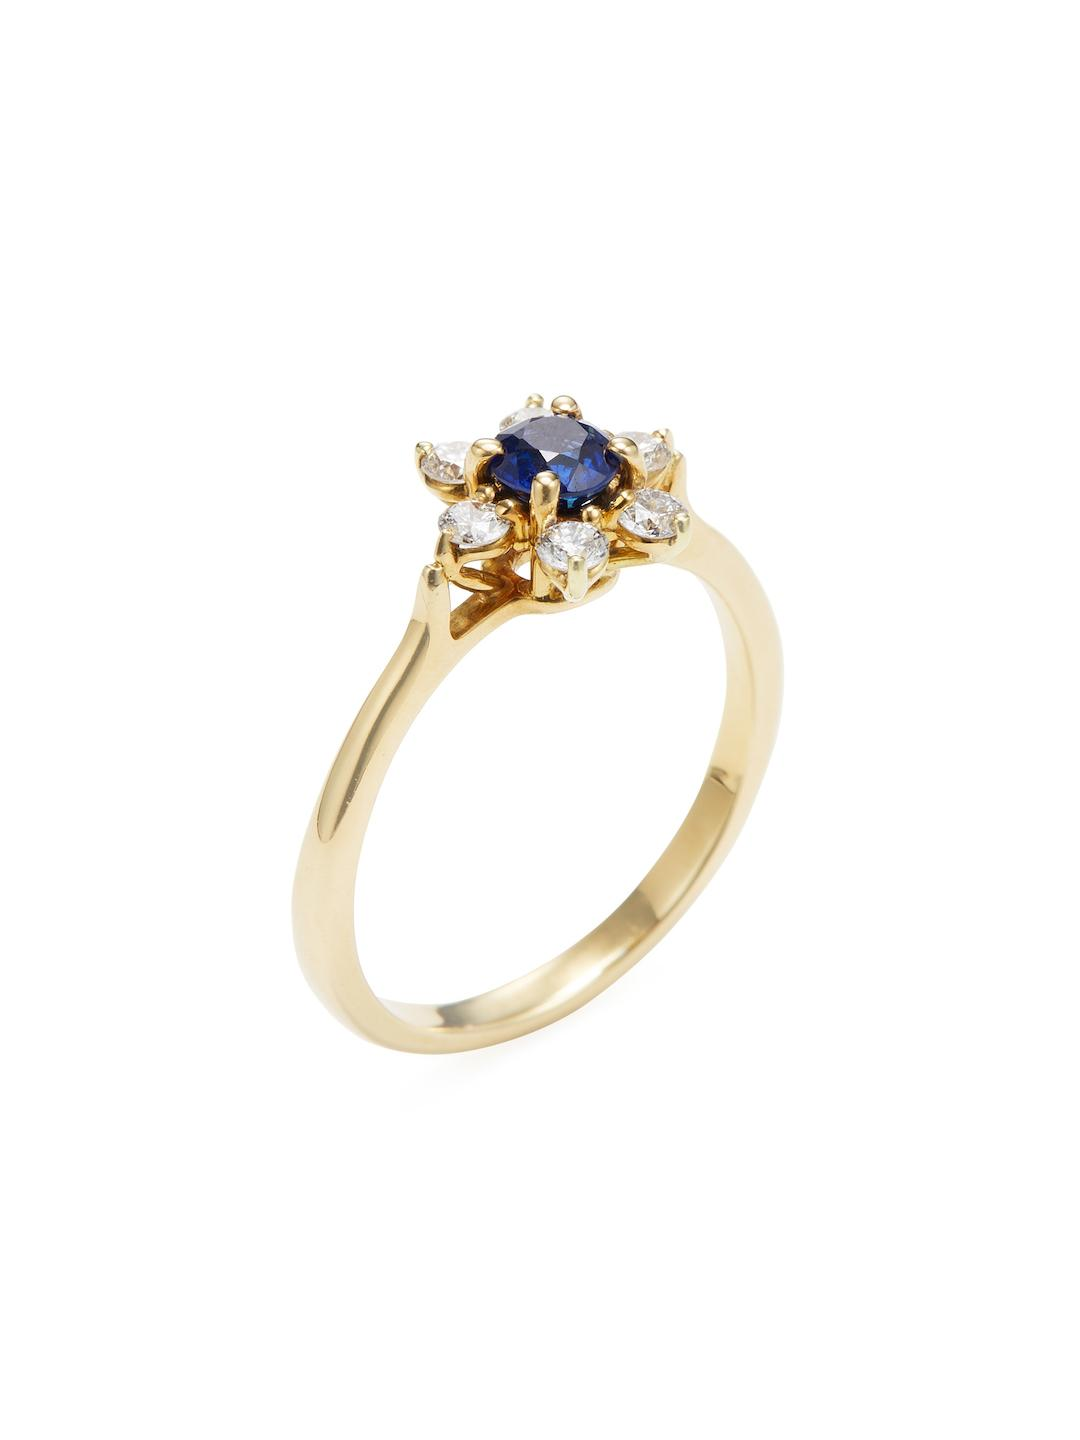 68b3436eb Tiffany & Co. Vintage 18k Yellow Gold, Blue Sapphire & Diamond Ring ...